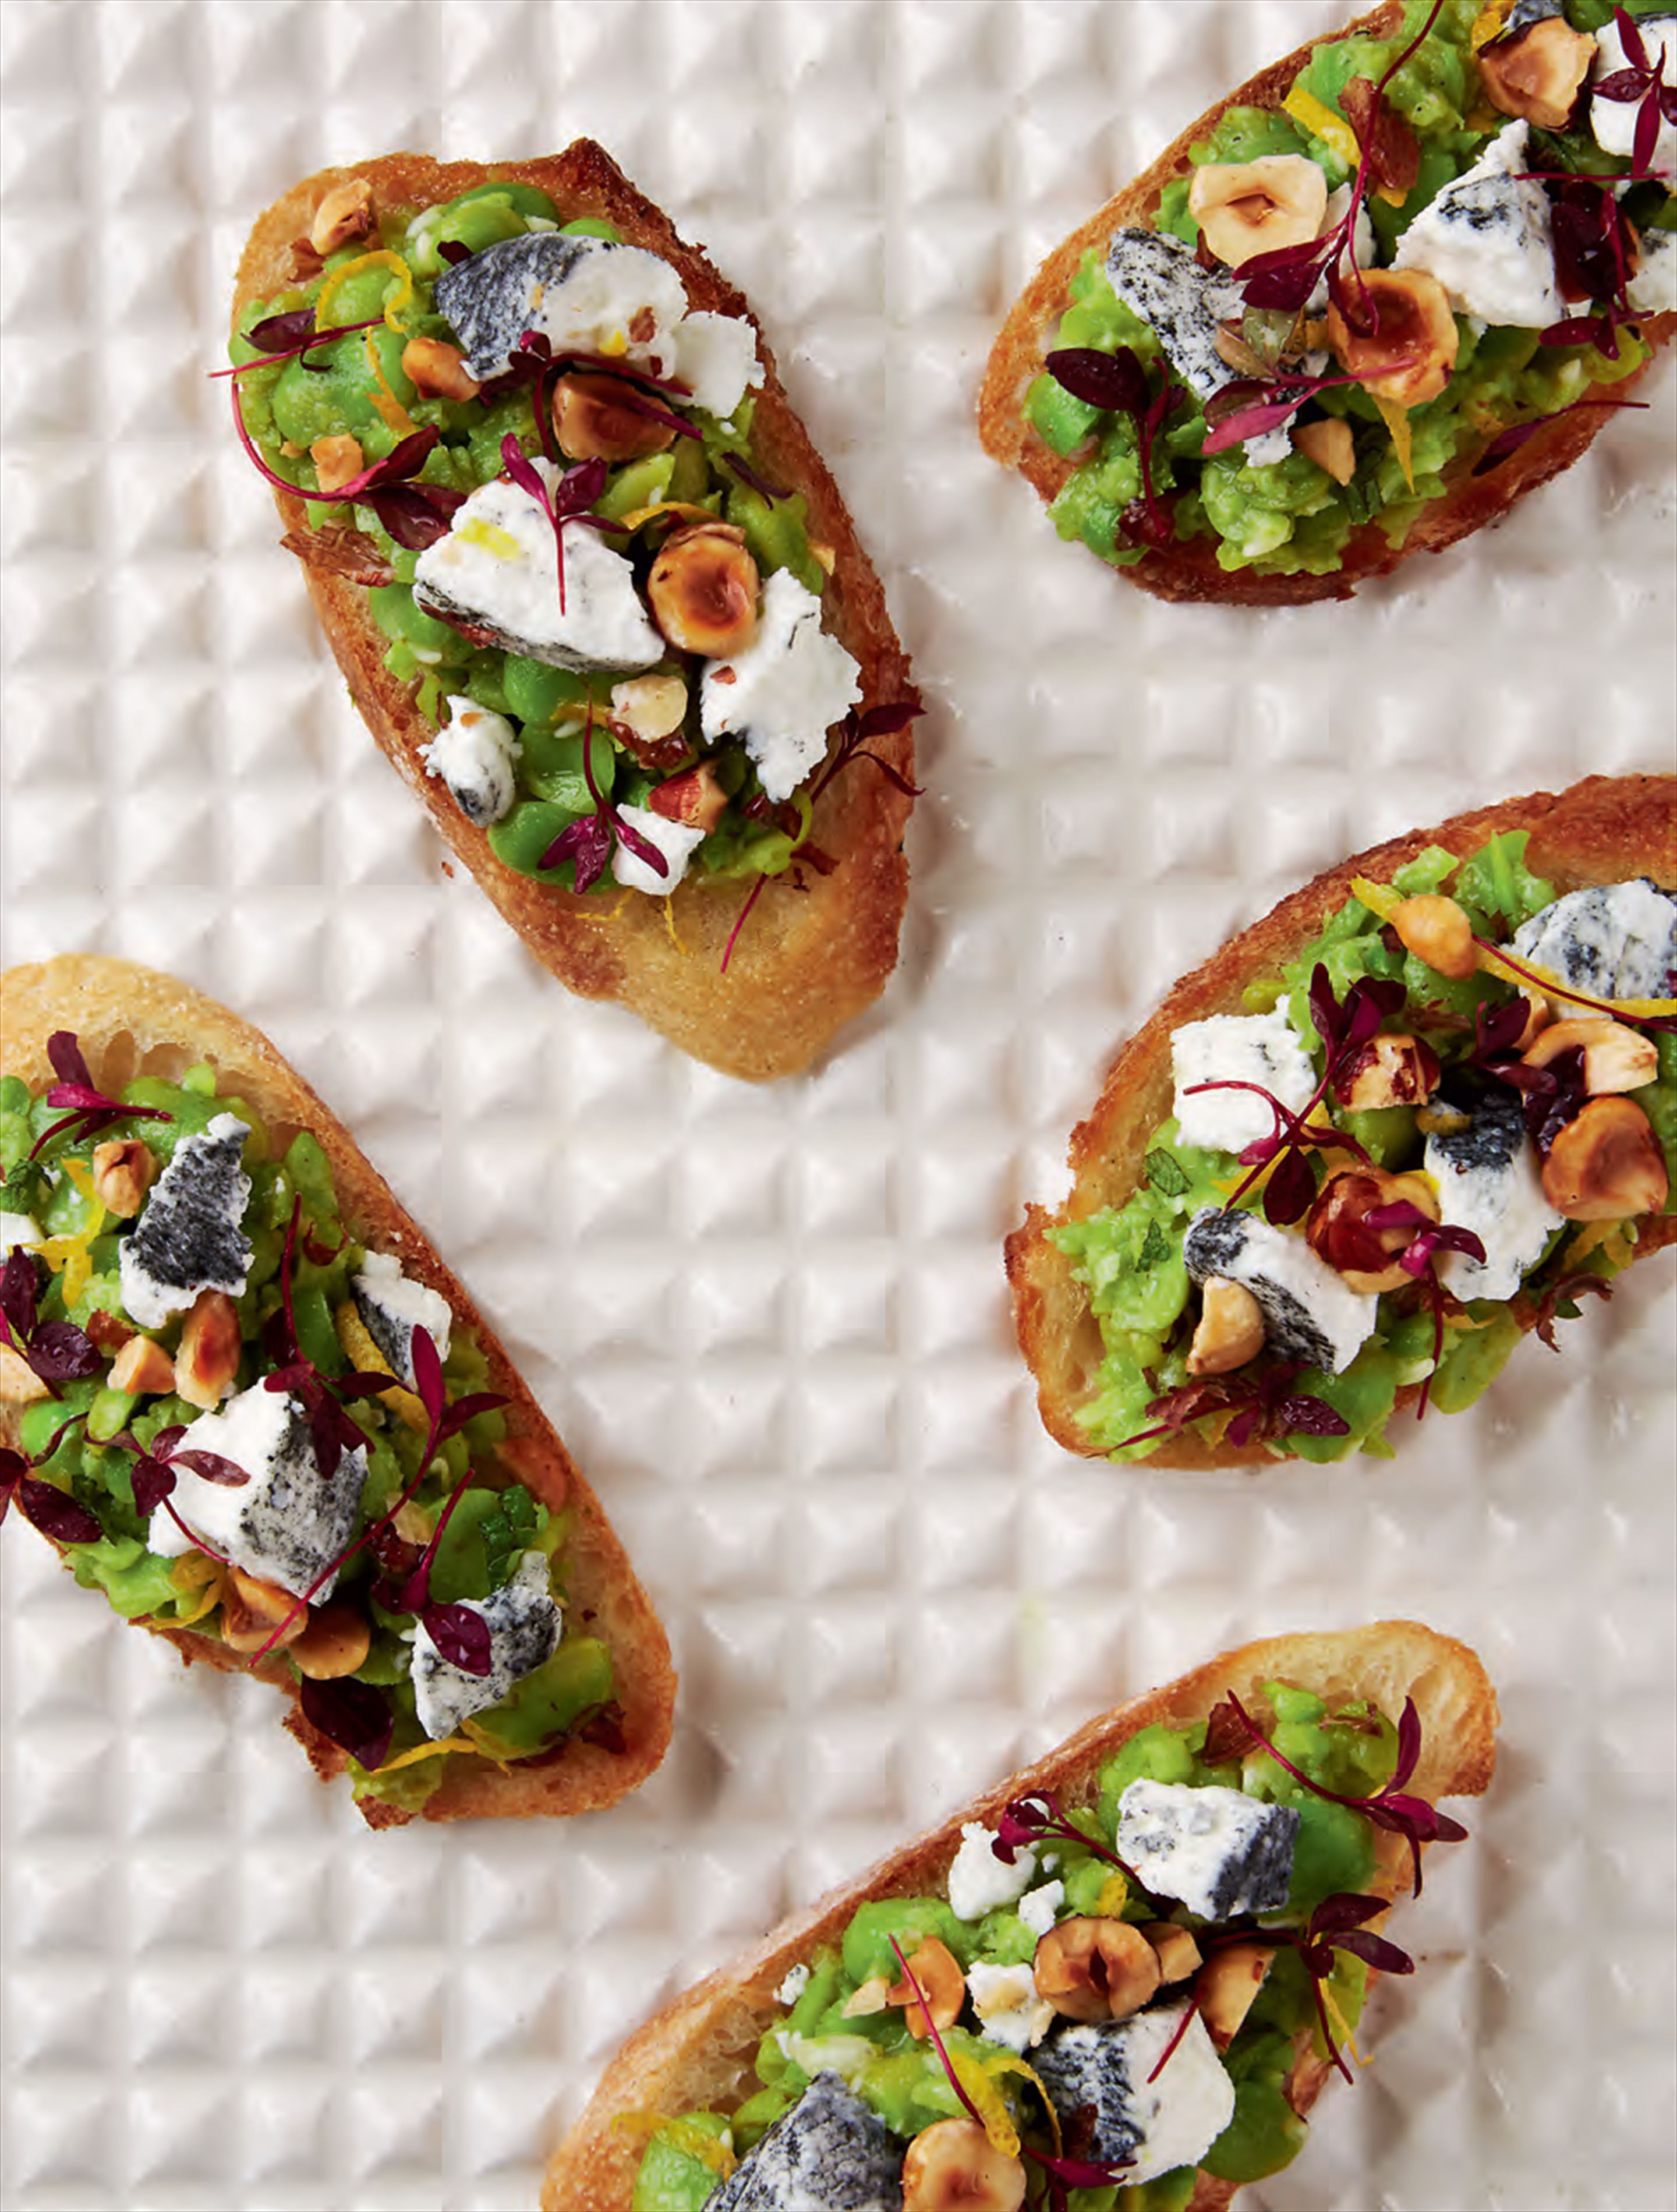 Broad bean, mint & goat's cheese crostini